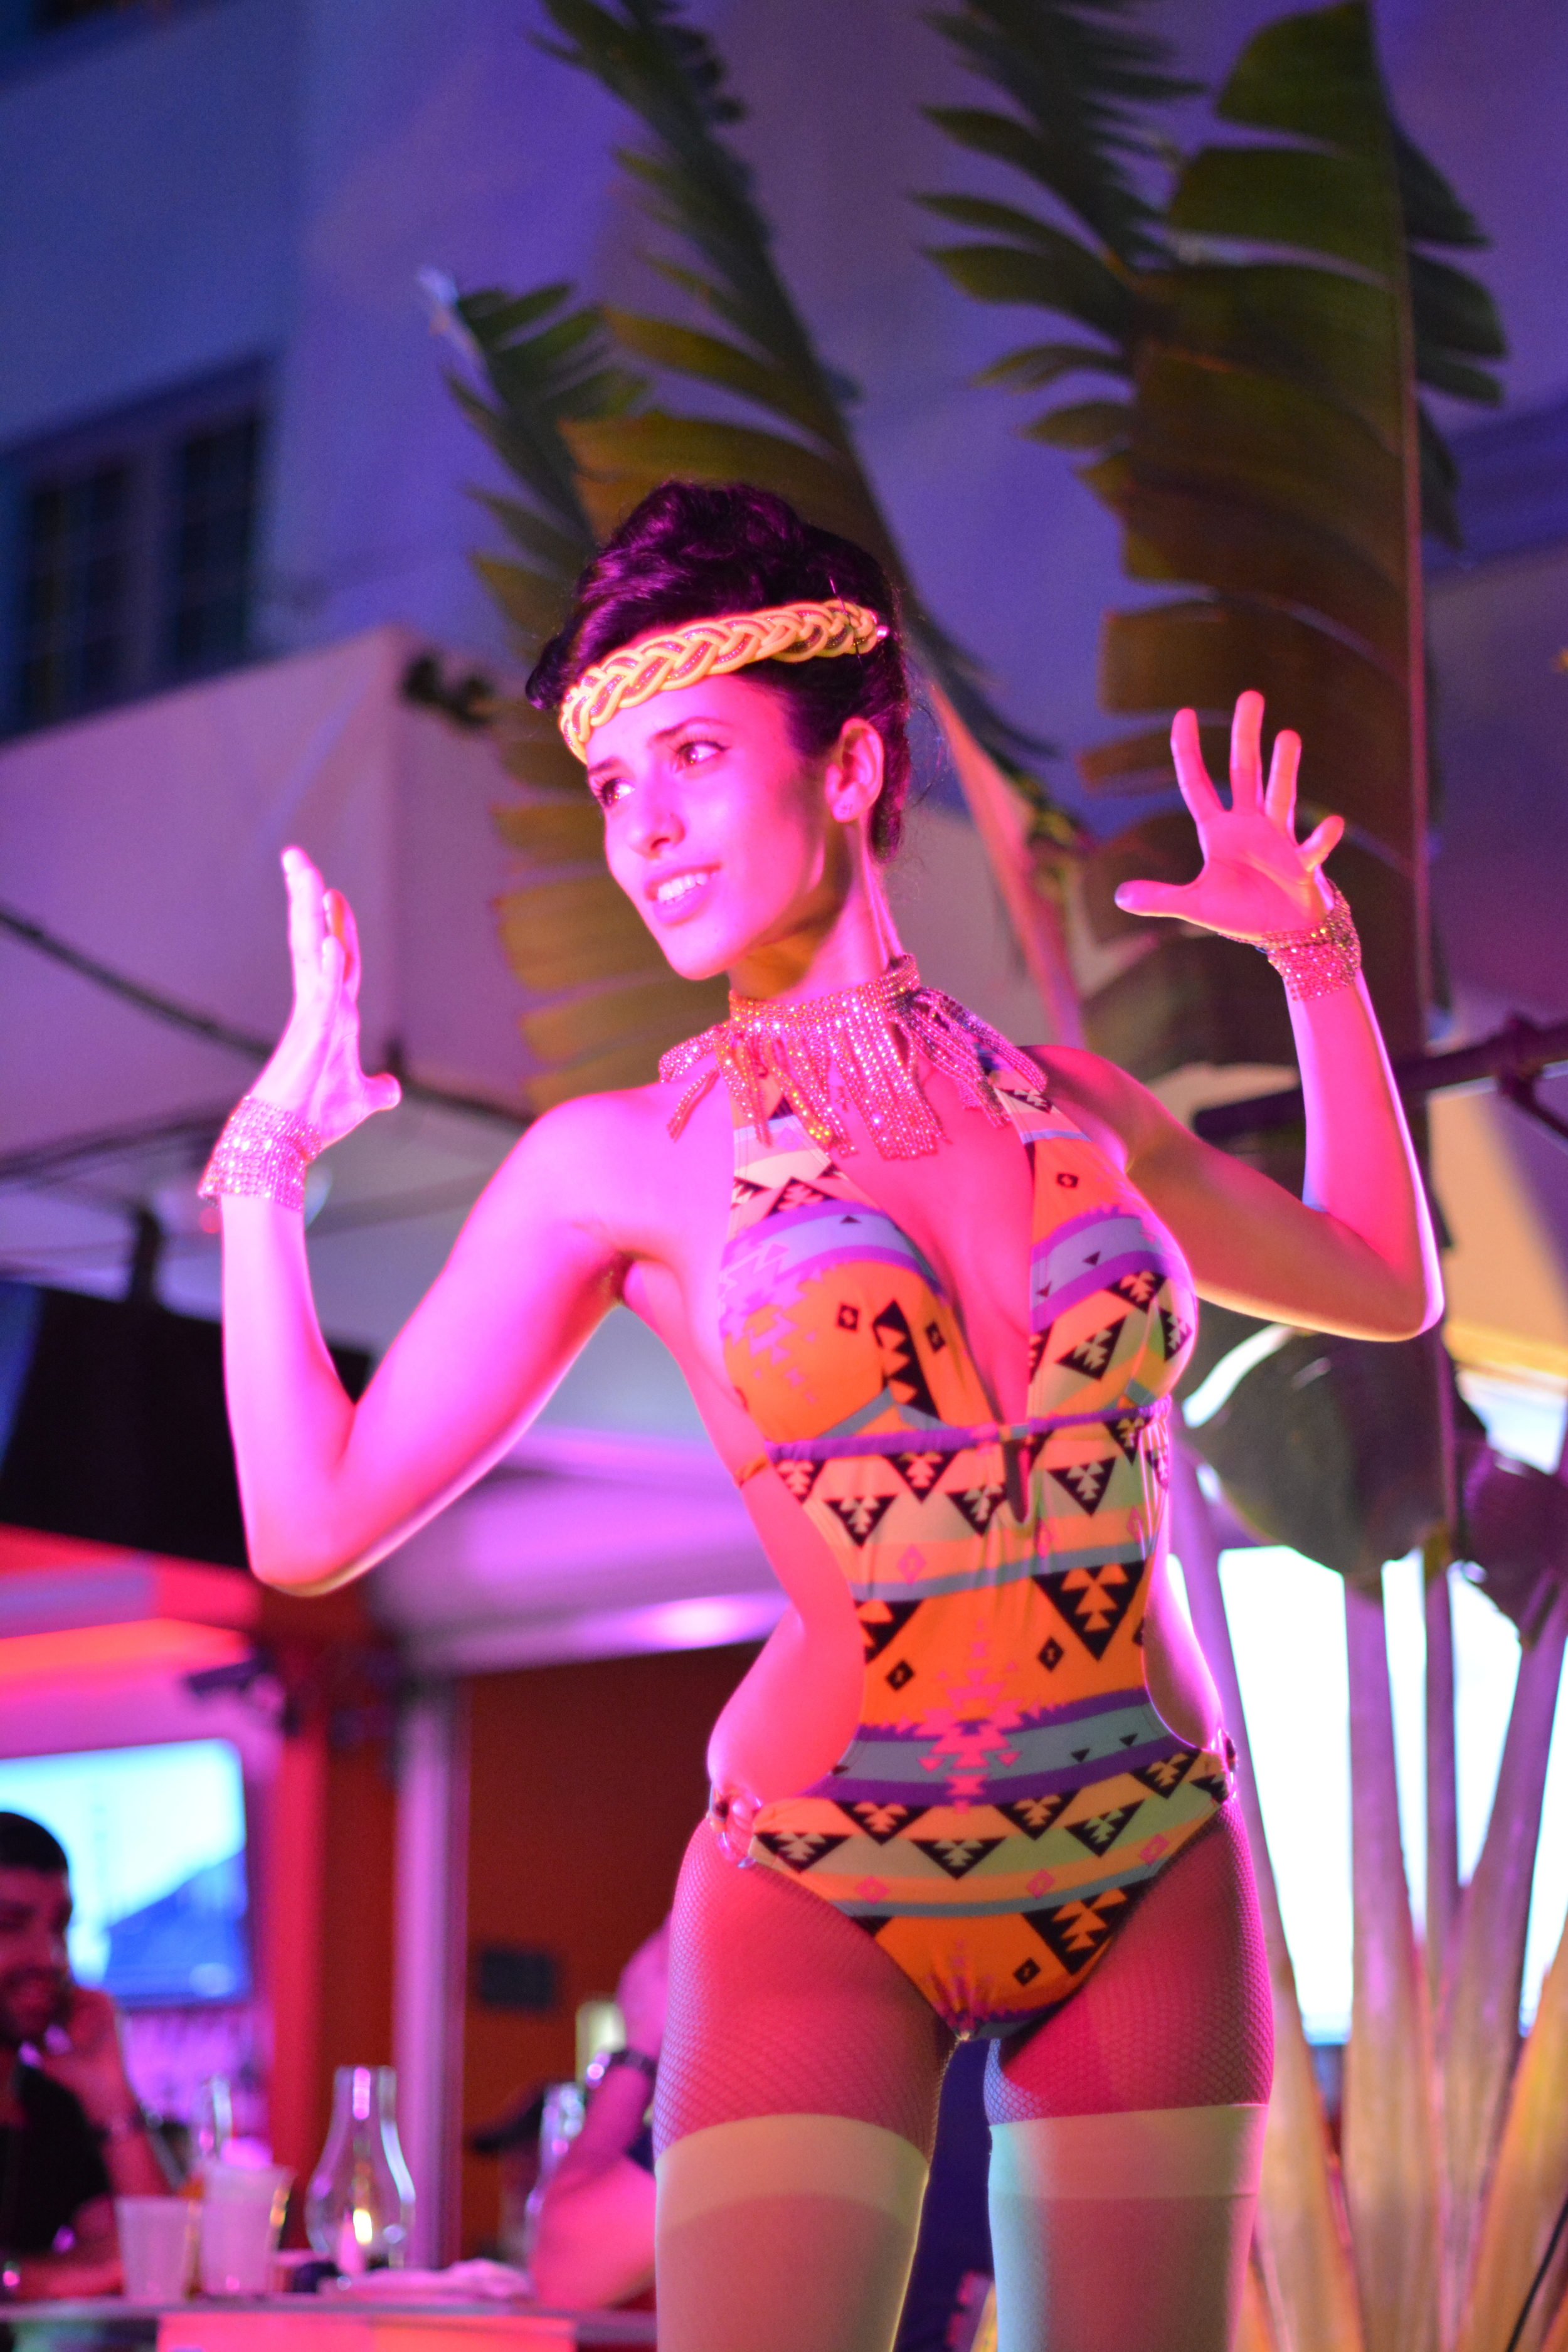 Miami dancer and nightlife entertainer Lidia (@liditalent_and_passion)originally hails from Cuba; seen here performing for patrons and passers-by at Oceans 10 on Ocean Drive in South Beach